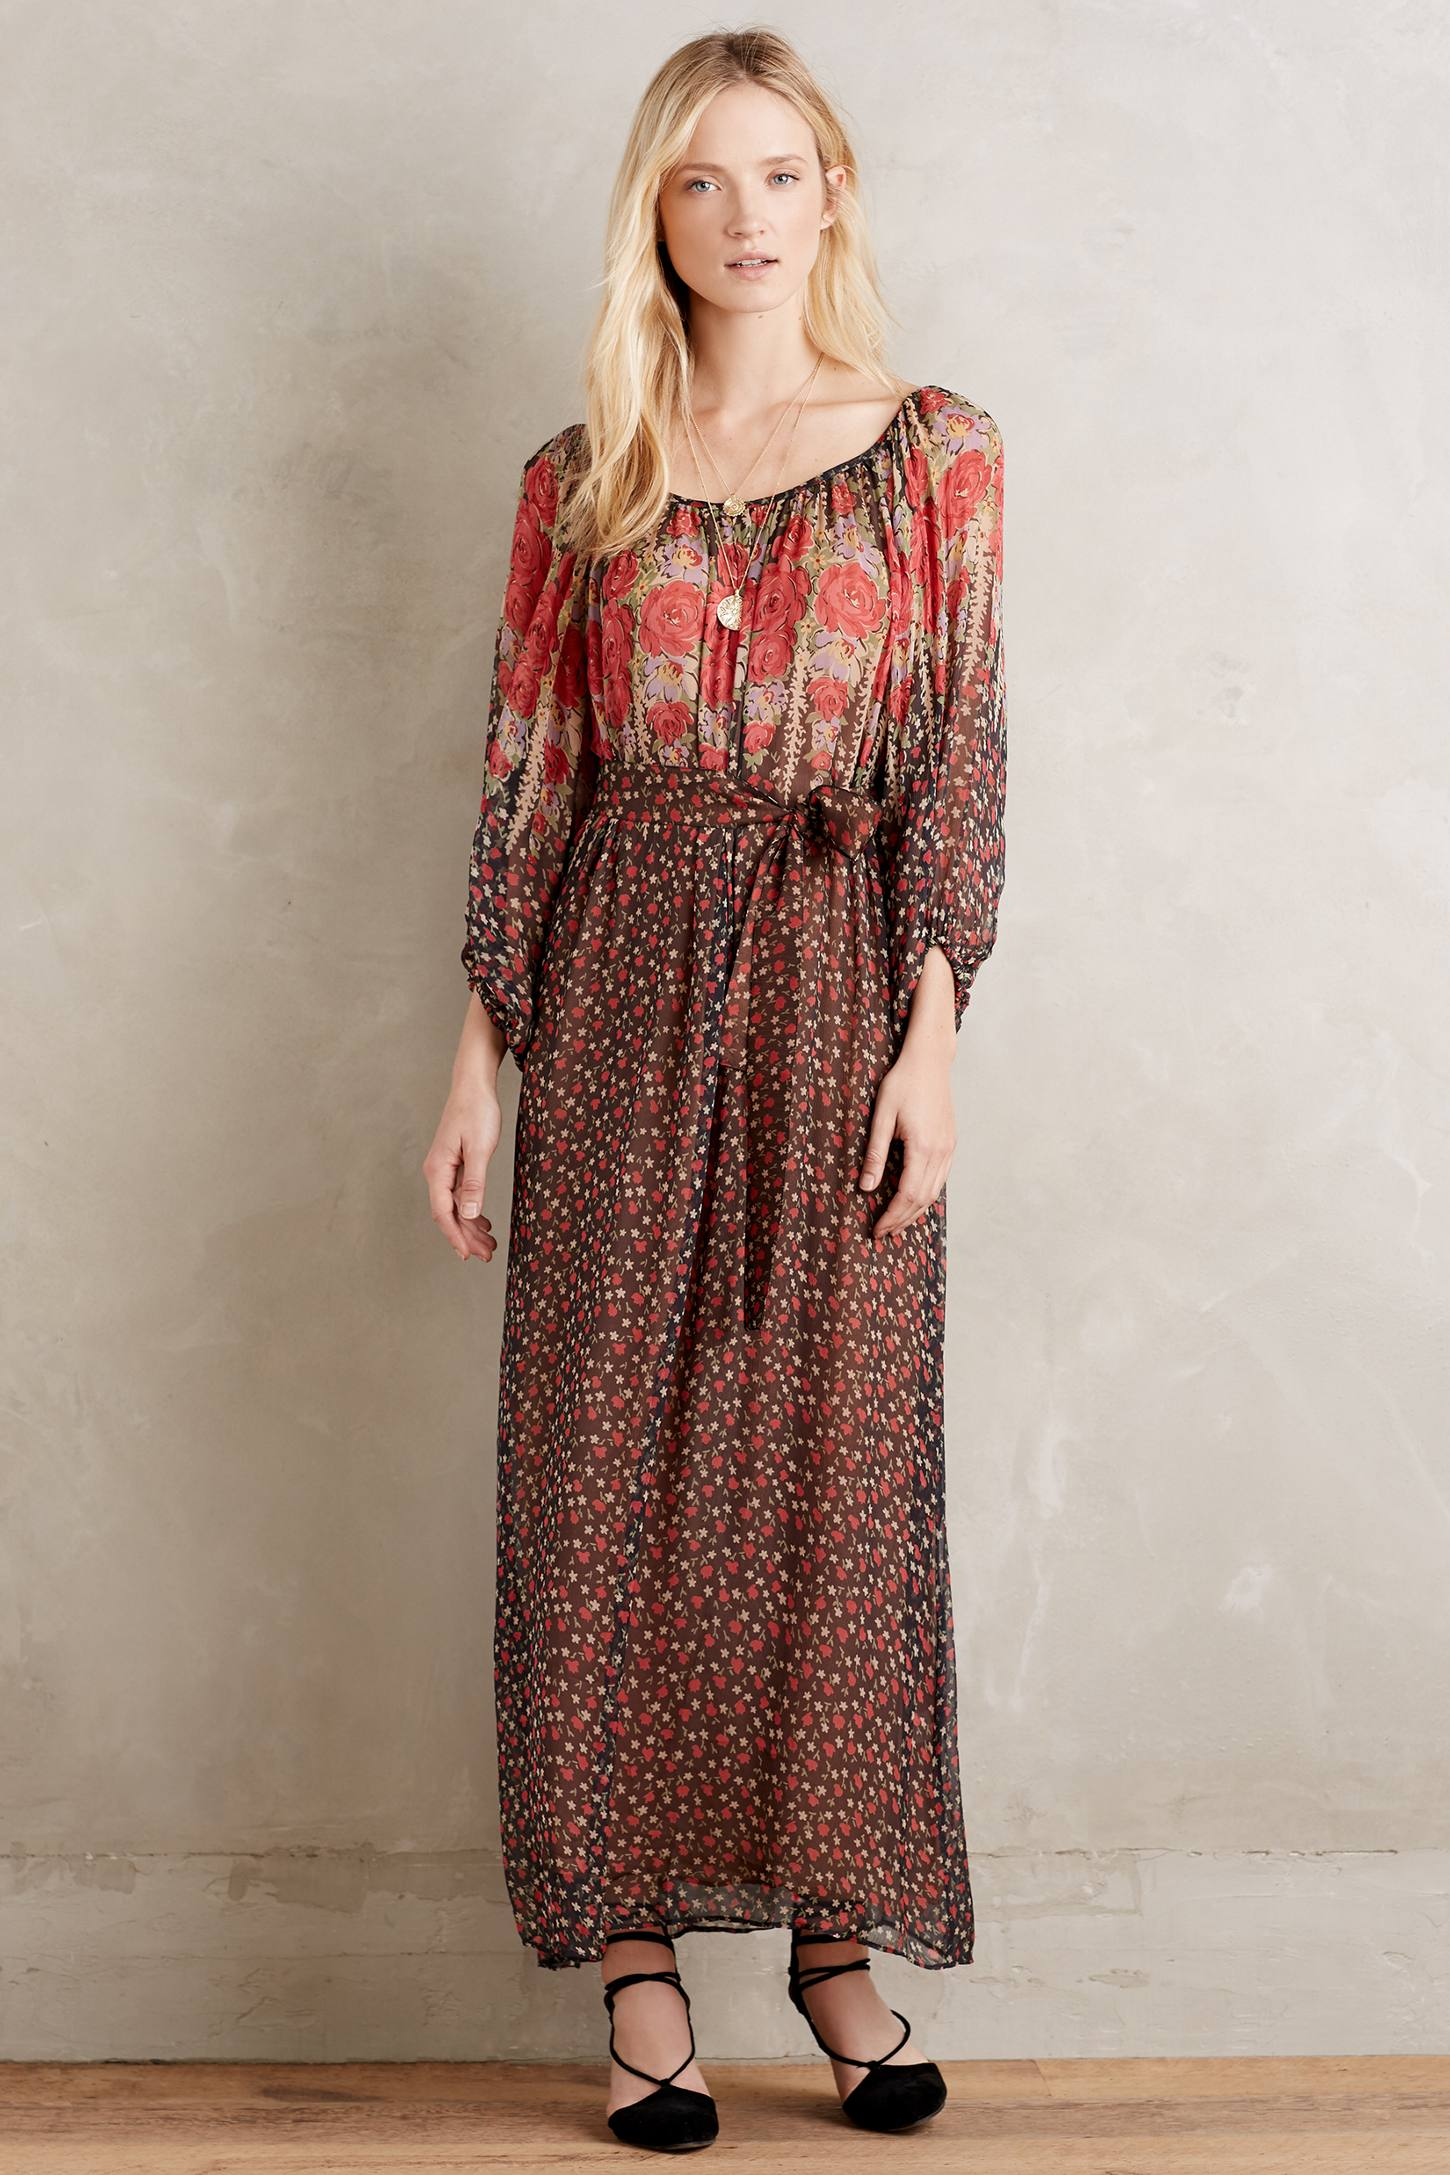 60d13b01cb2f Anthropologie's New Arrivals: Fall Dresses & Skirts - Topista